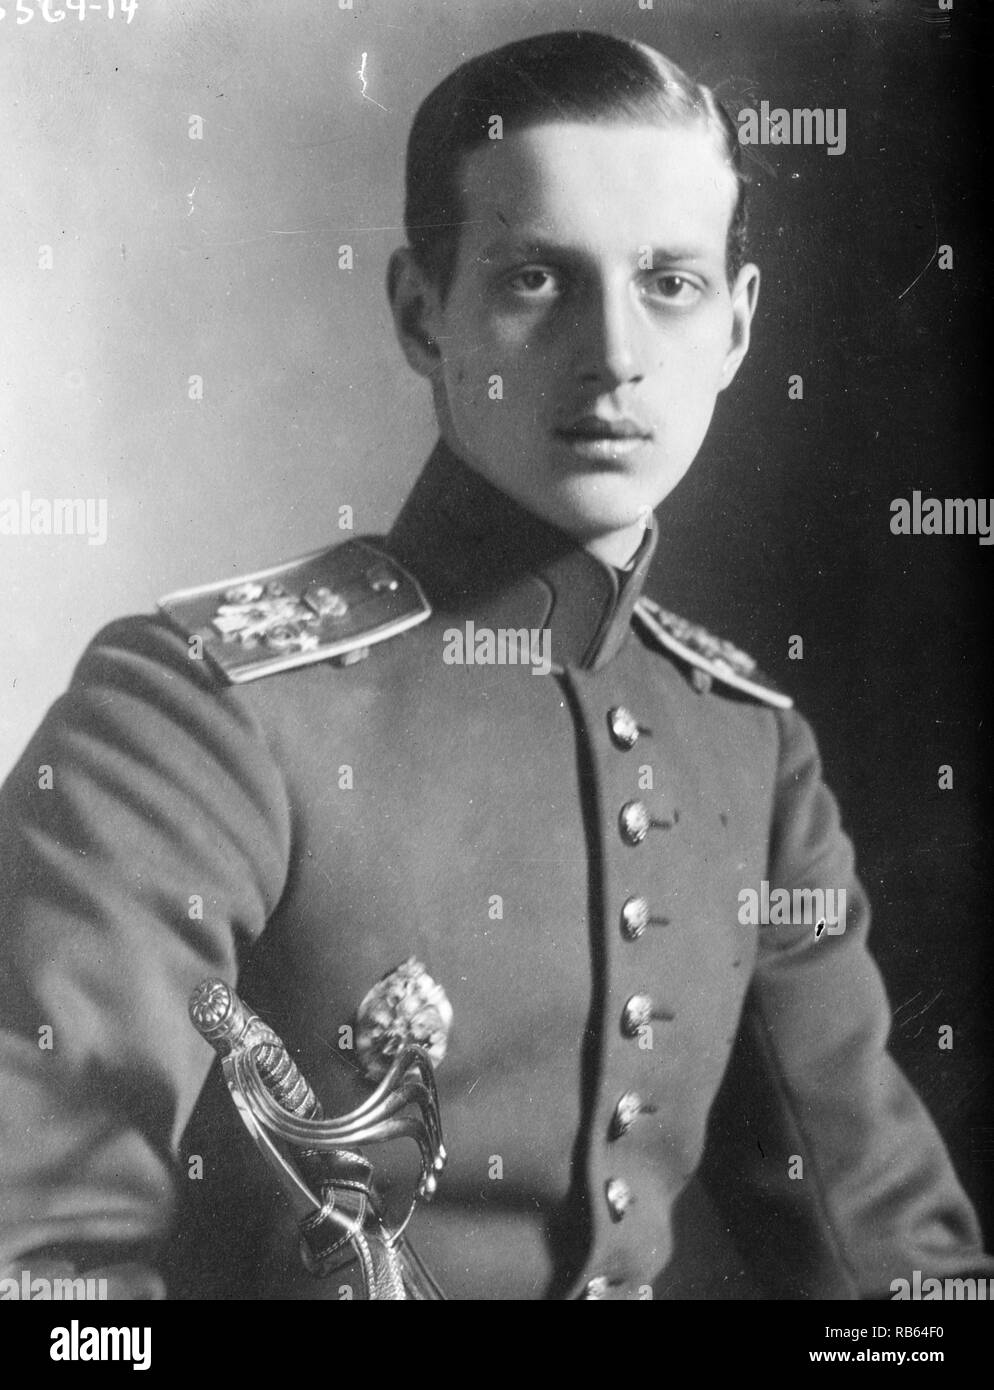 Prince Dimitri Alexandrovich of Russia (15 August 1901 - 7 July 1980) was a son of Grand Duke Alexander Mikhailovich of Russia and Grand Duchess Xenia Alexandrovna of Russia. He was a nephew of Tsar Nicholas II of Russia. Stock Photo